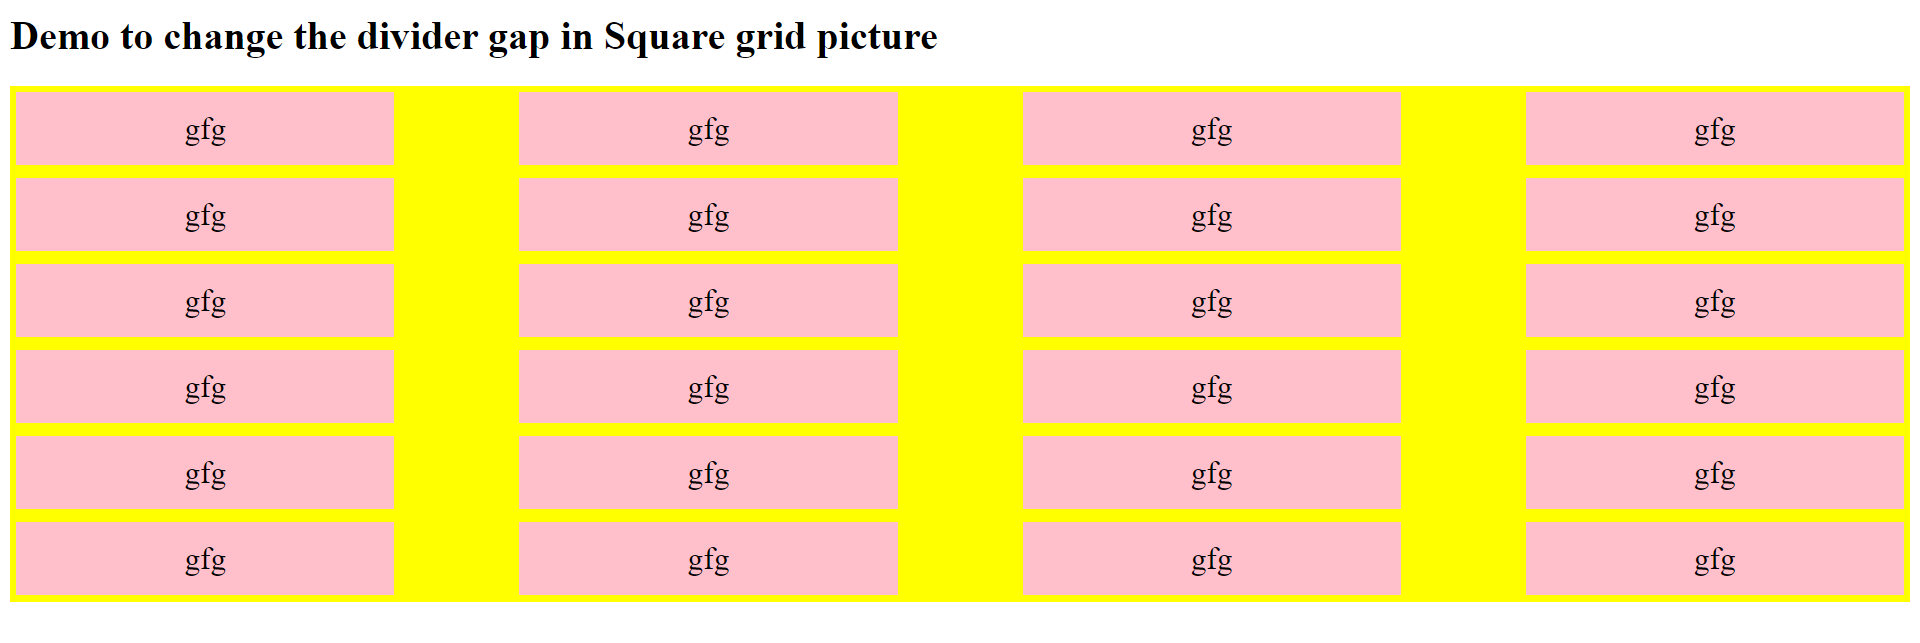 Output for grid-row-gap and grid-column-gap.